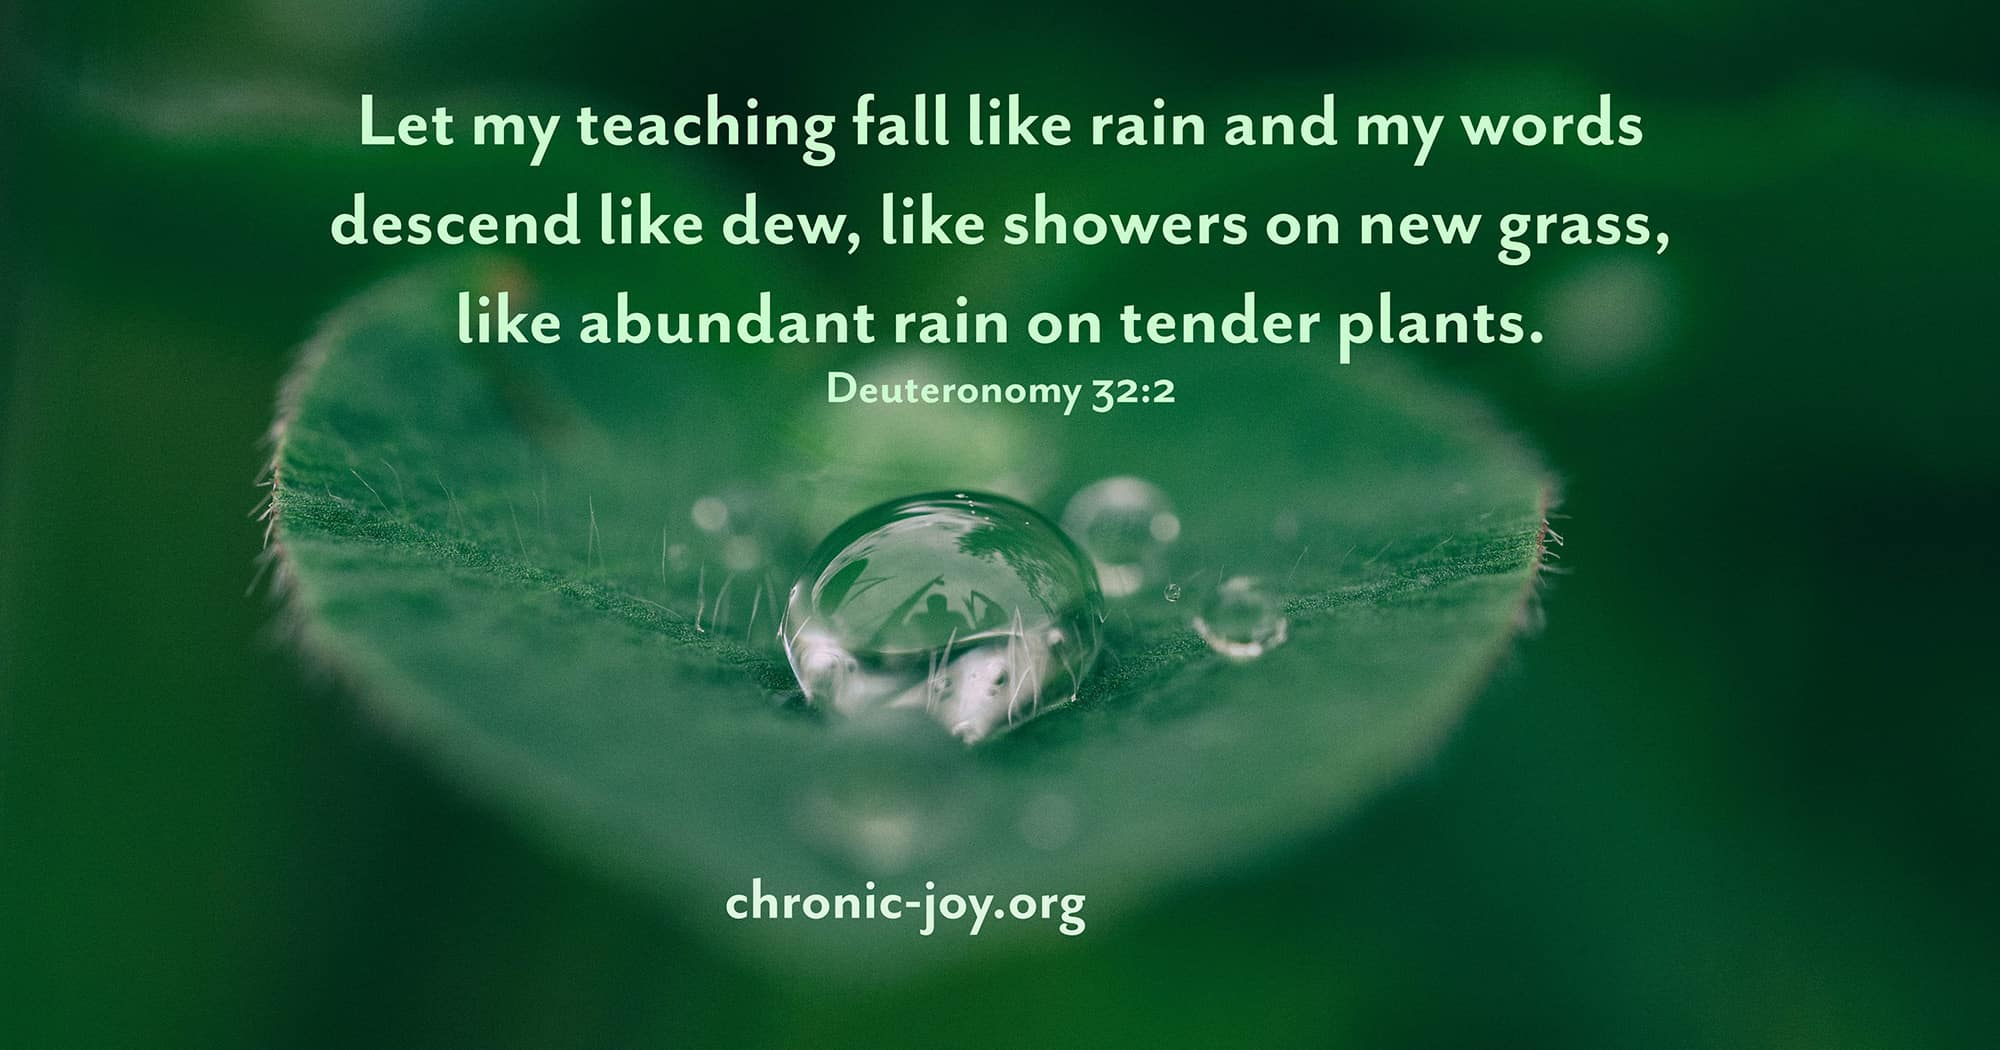 Let my teaching fall like rain